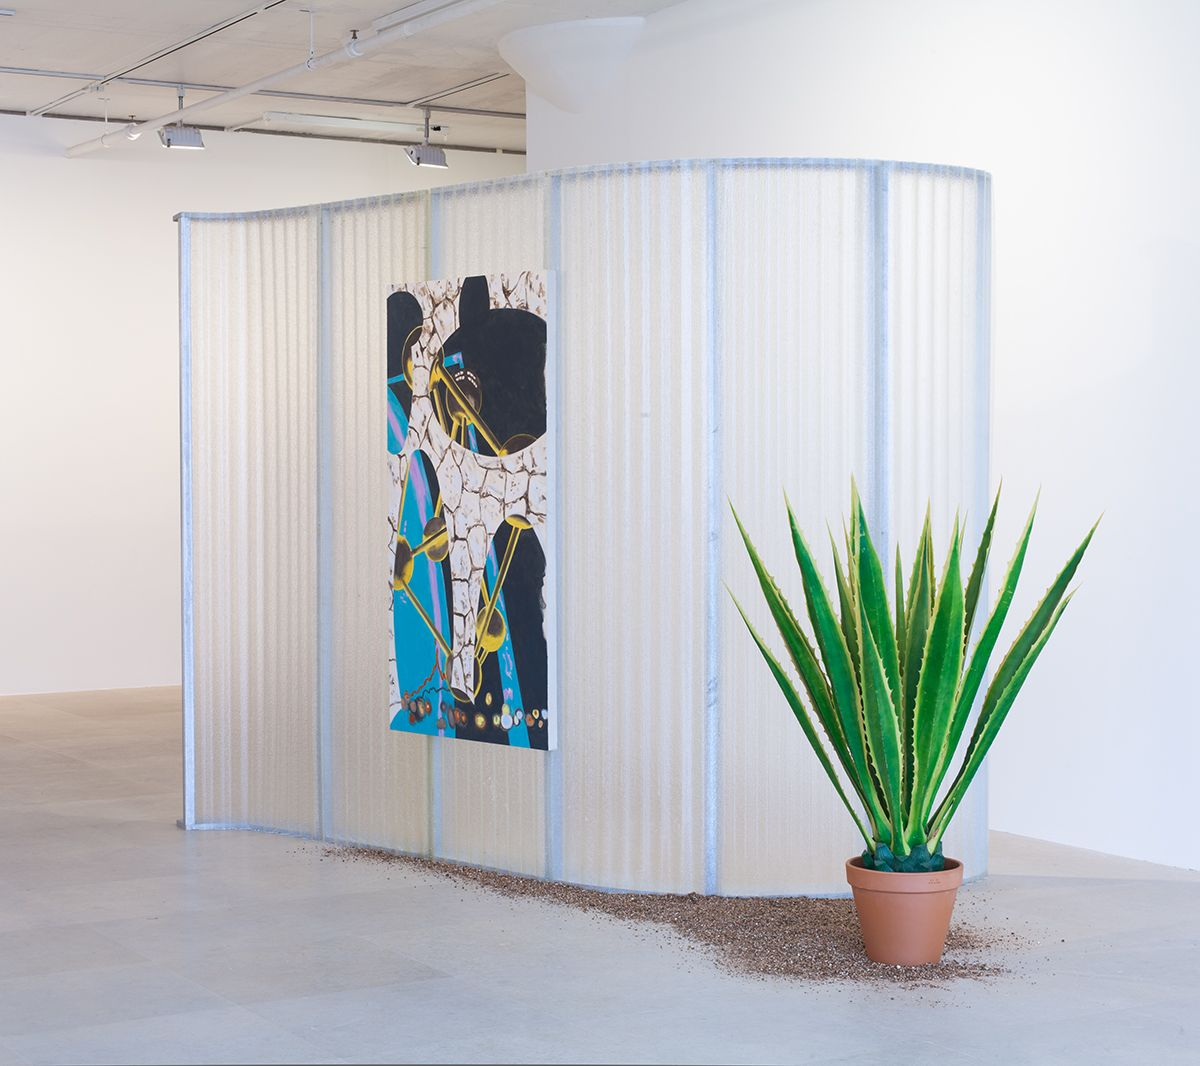 William Leavitt, Body Space, 2012, Acrylic on canvas, fiberglass, wood, artificial, plant, and vermiculite, 89 3/4 x 156 x 73 inches